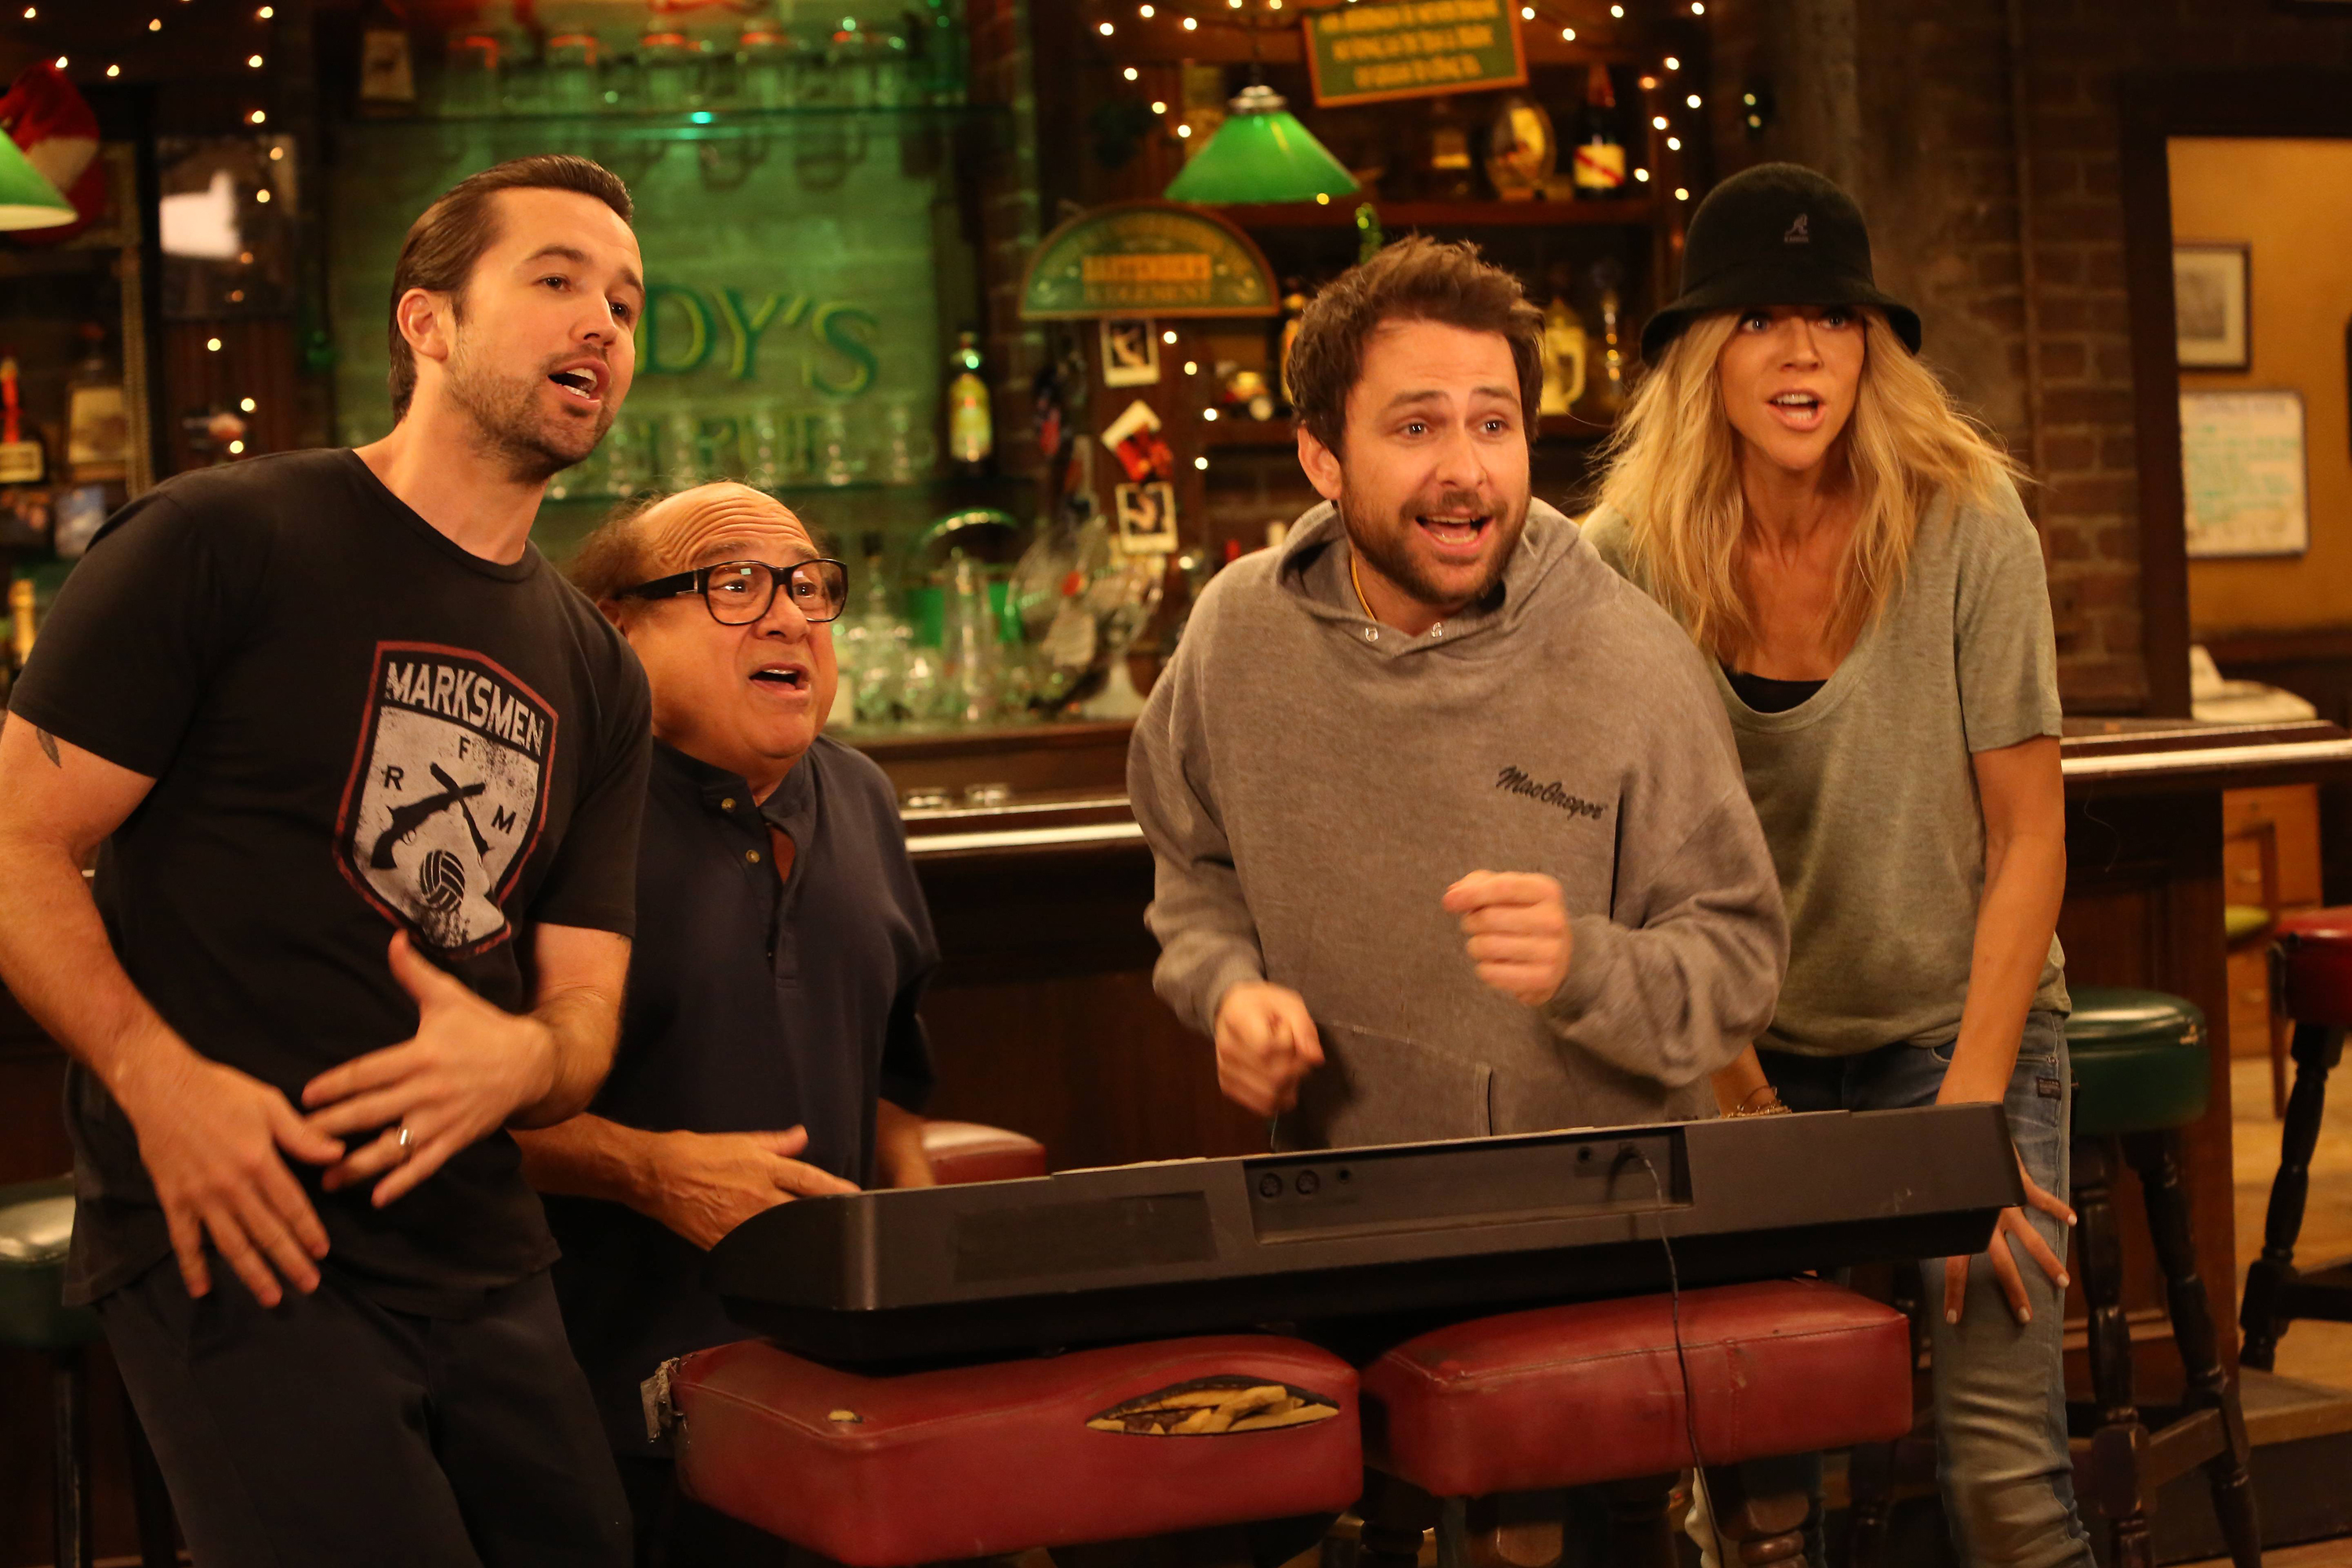 IT'S ALWAYS SUNNY IN PHILADELPHIA - Pictured: (L-R) Rob McElhenney as Mac, Danny DeVito as Frank Reynolds, Charlie Day as Charlie Kelly, Kaitlin Olson as Dee Reynolds. CR: Patrick McElhenney/FX